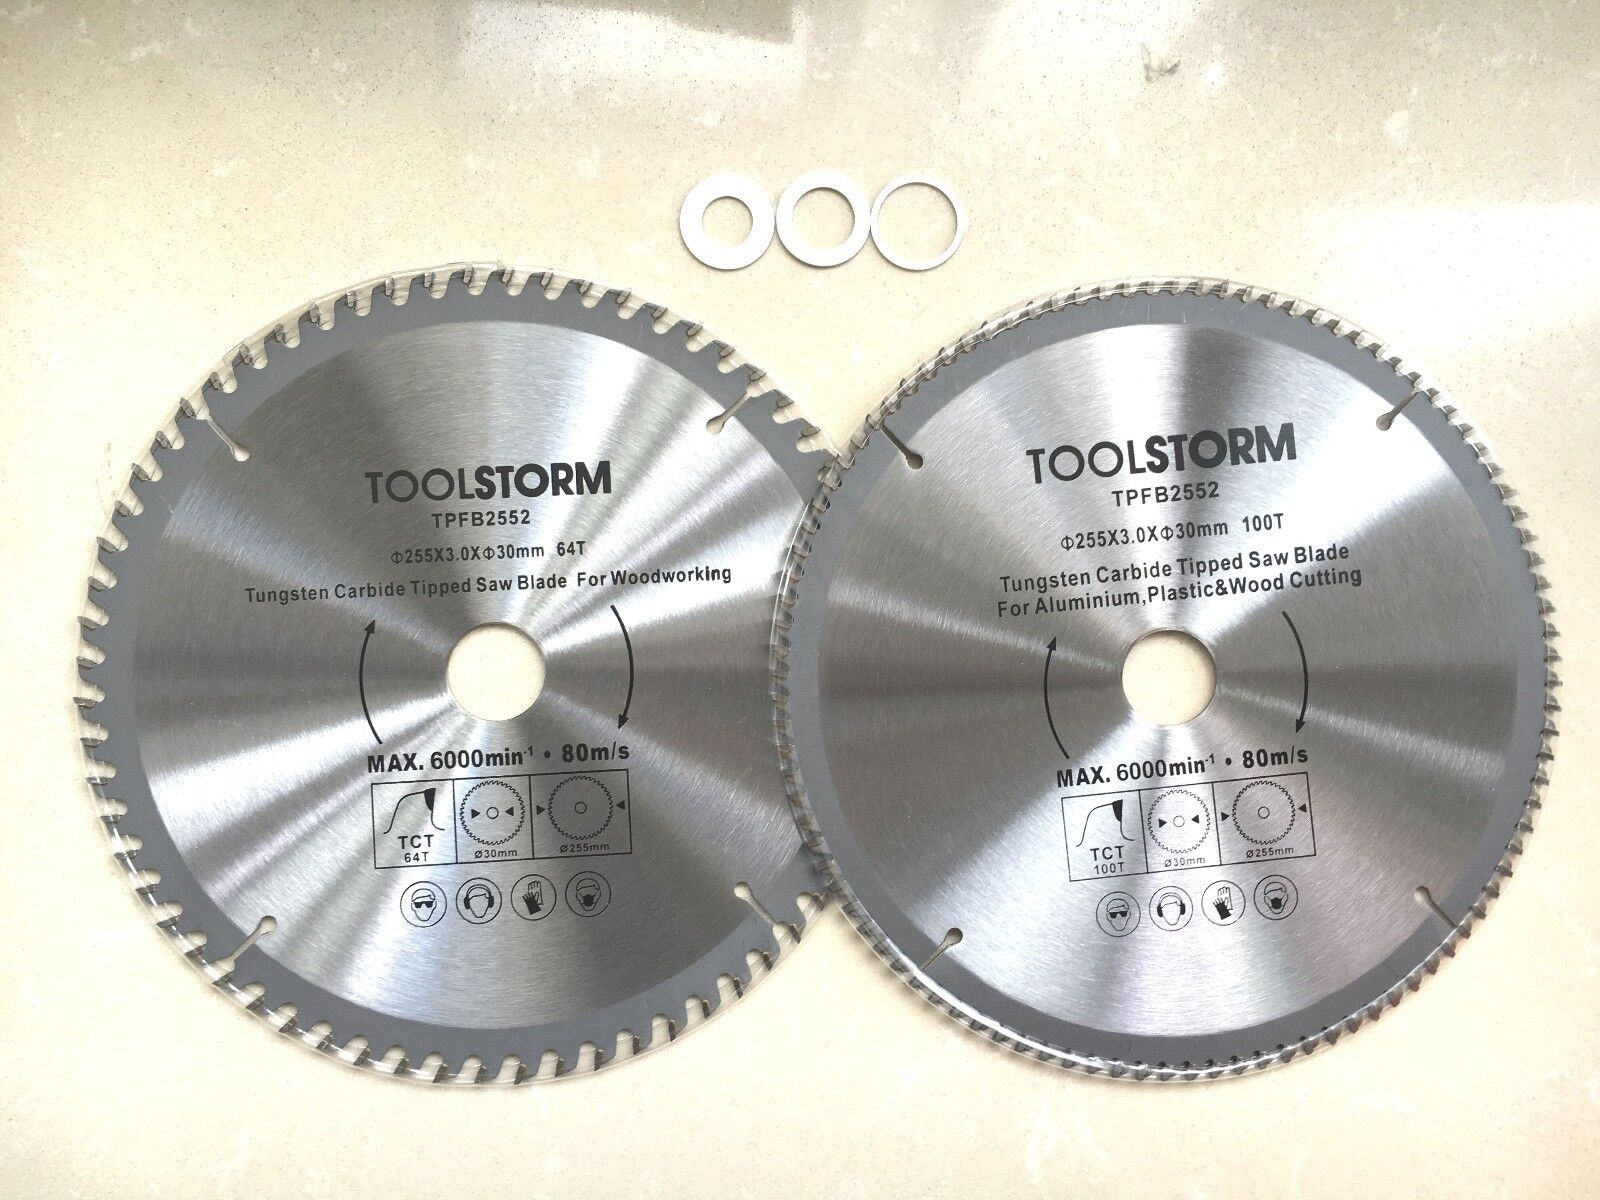 2x mitre saw table saw blade 255mm 100t60t fit makitahitachiozito 2x mitre saw table saw blade 255mm 100t60t fit makitahitachiozitobosch etc30mm bore with 3 reduction rings tct greentooth Gallery